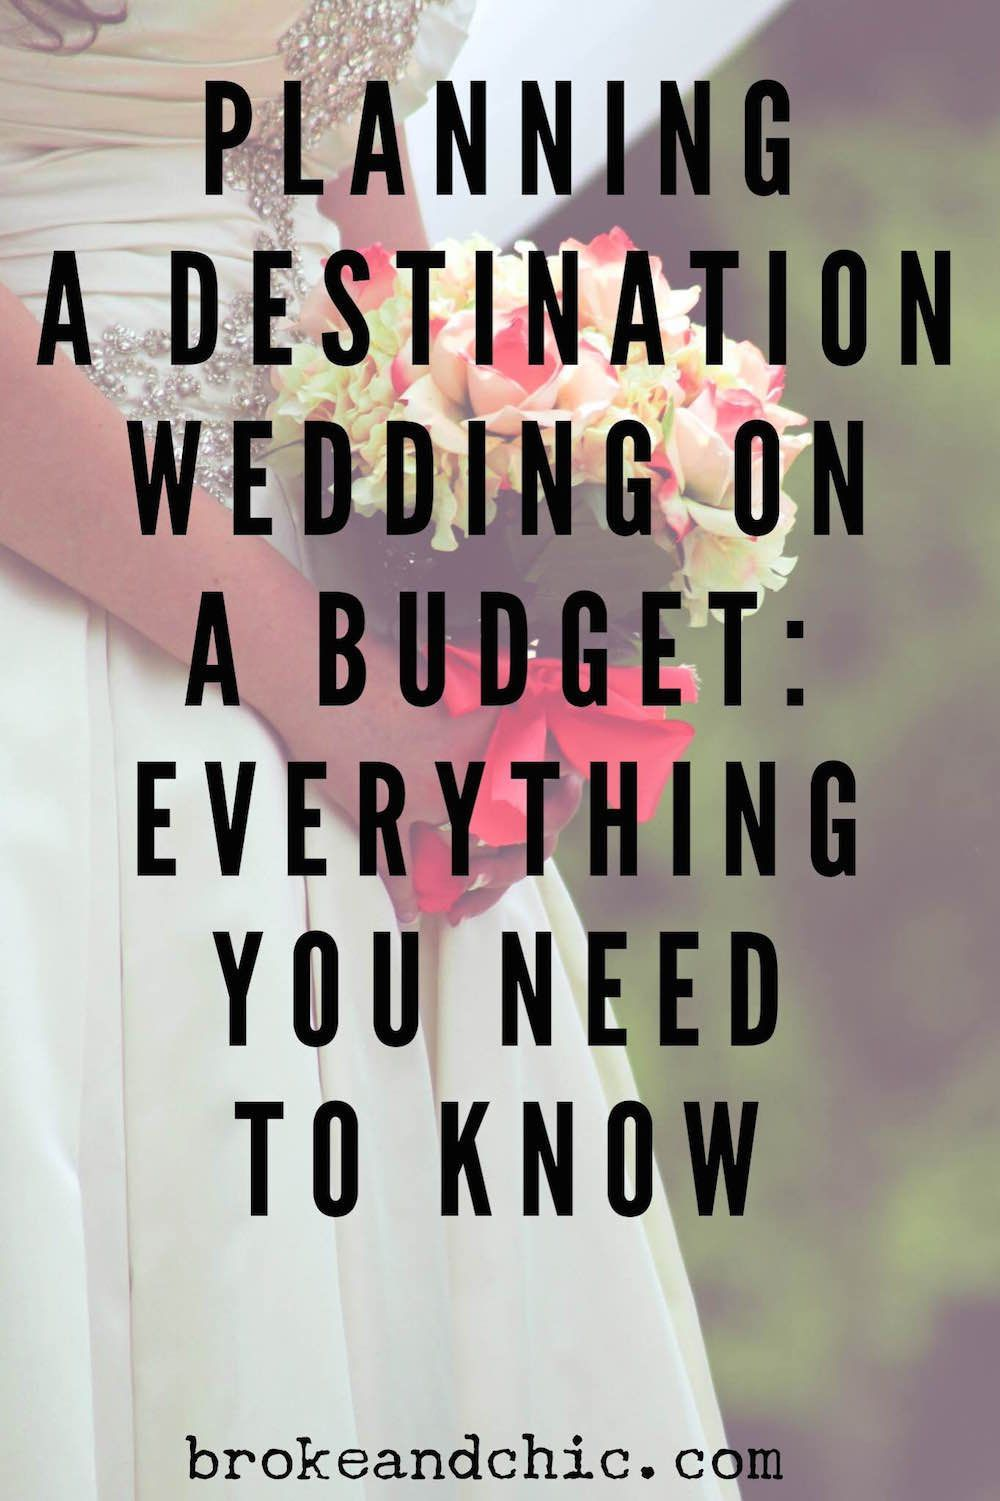 Wedding decorations on the beach october 2018 How to Plan A Destination Wedding on a Budget  okeandchic